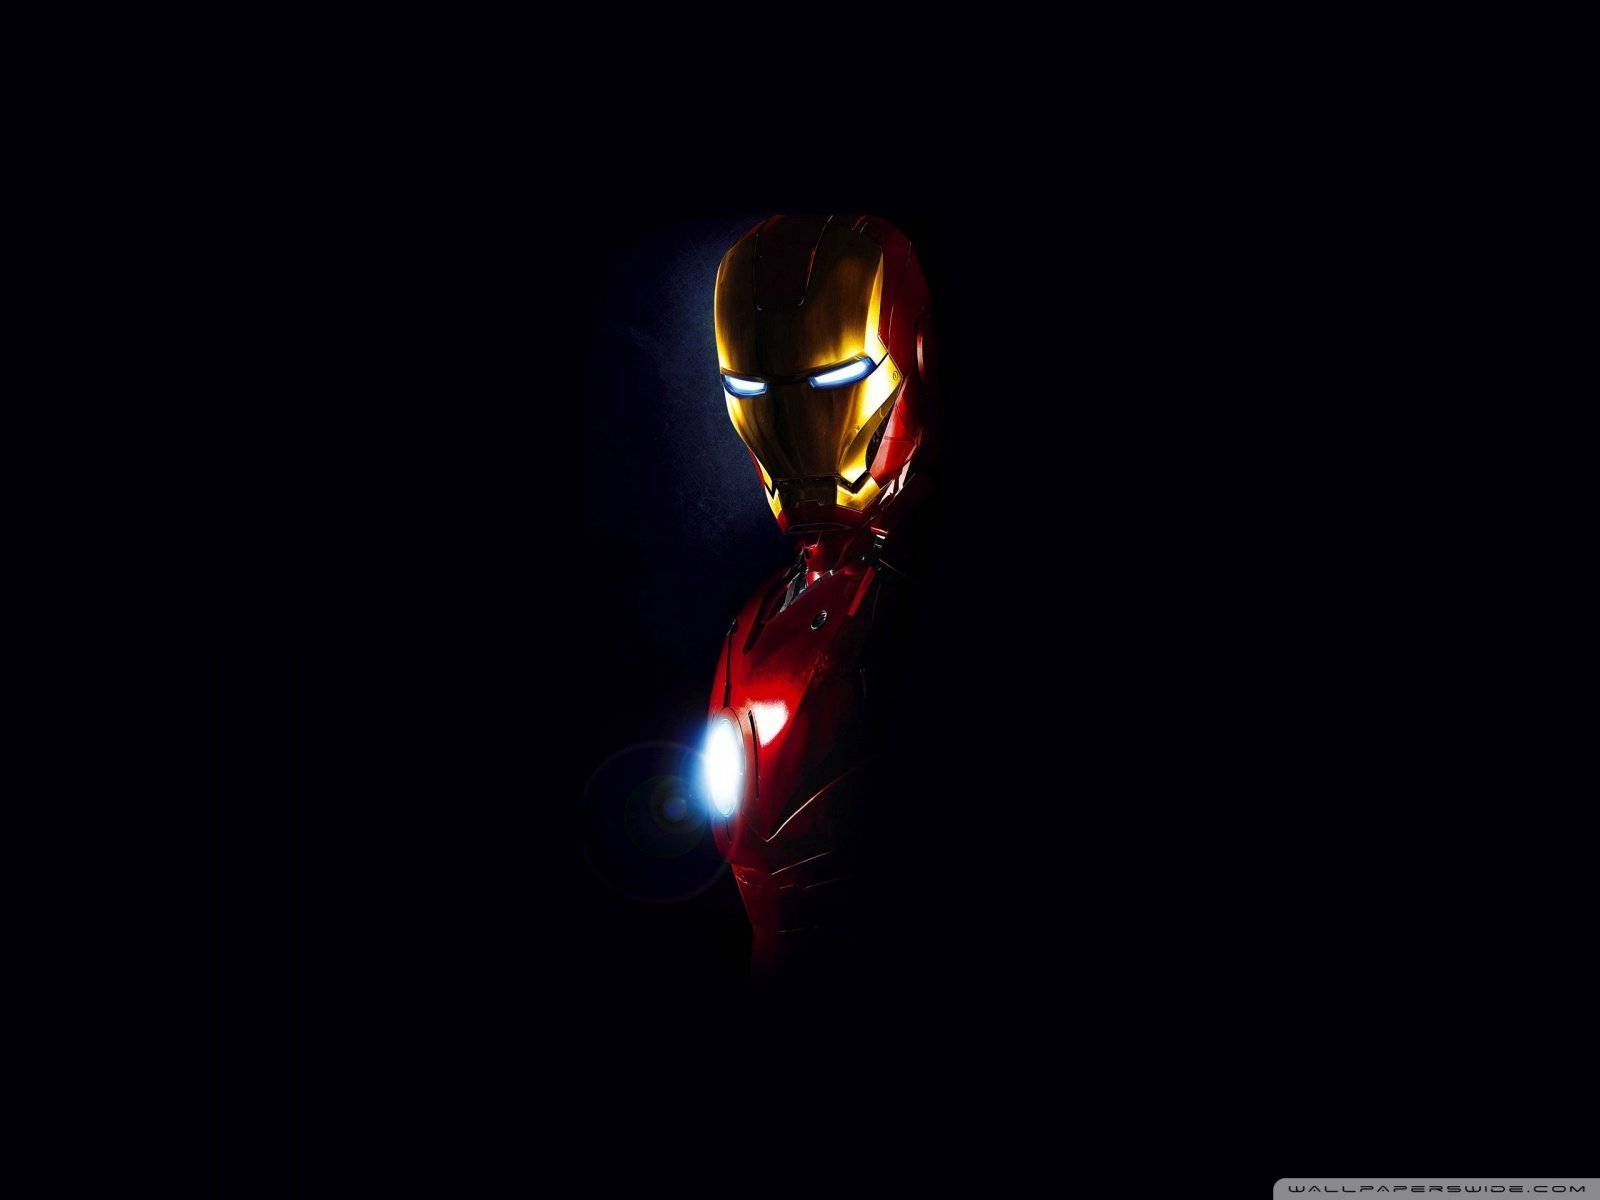 Free Download Am Iron Man Awesome Wallpapers Pinterest 1600x1200 For Your Desktop Mobile Tablet Explore 75 I Am Awesome Wallpaper I Am Second Wallpaper I Am Your Wallpaper Actually